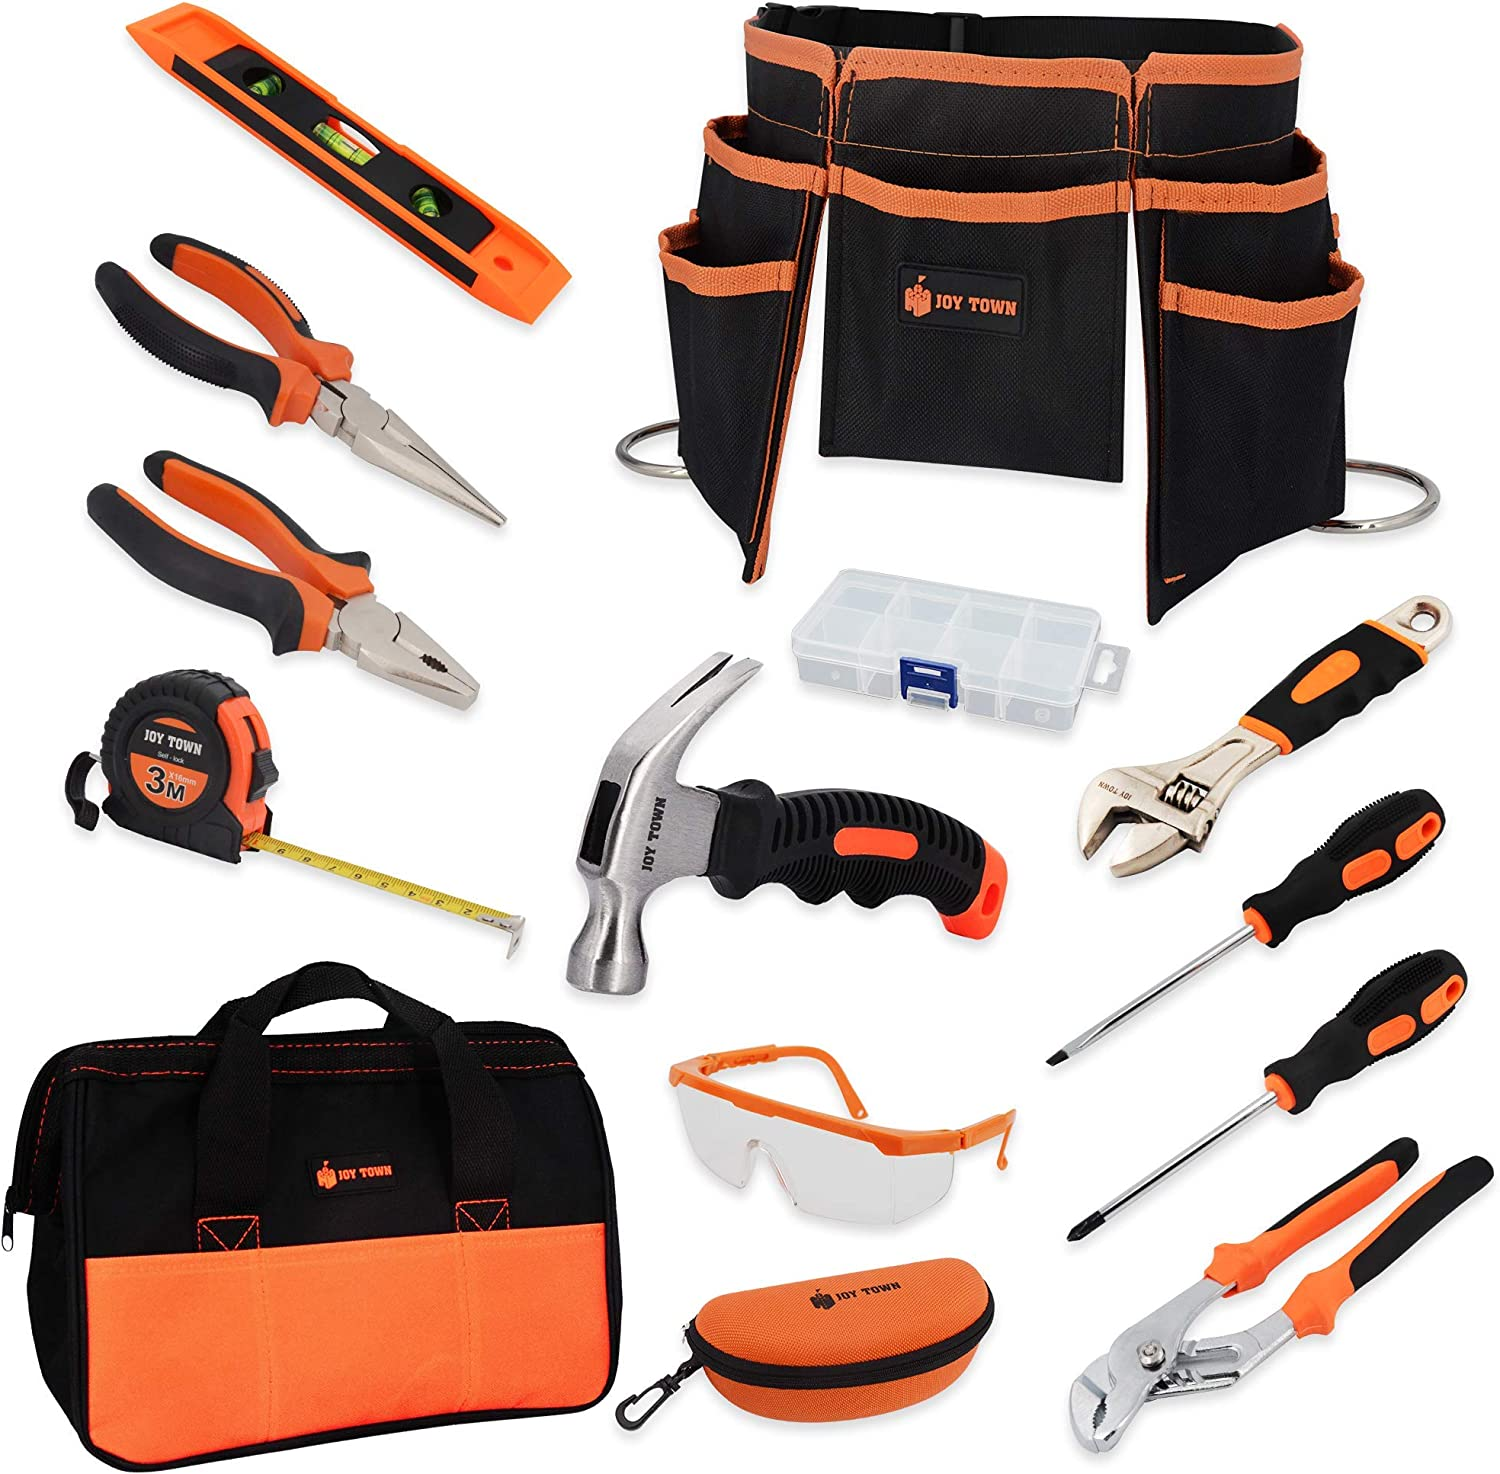 JoyTown Kids Real Tool Set - Junior Steel Forged Tool Kit for Children with Real Hand Tools, Kids Tool Belt, Portable Tool Bag, Perfect Learning Tools for Home DIY (Orange & Black)